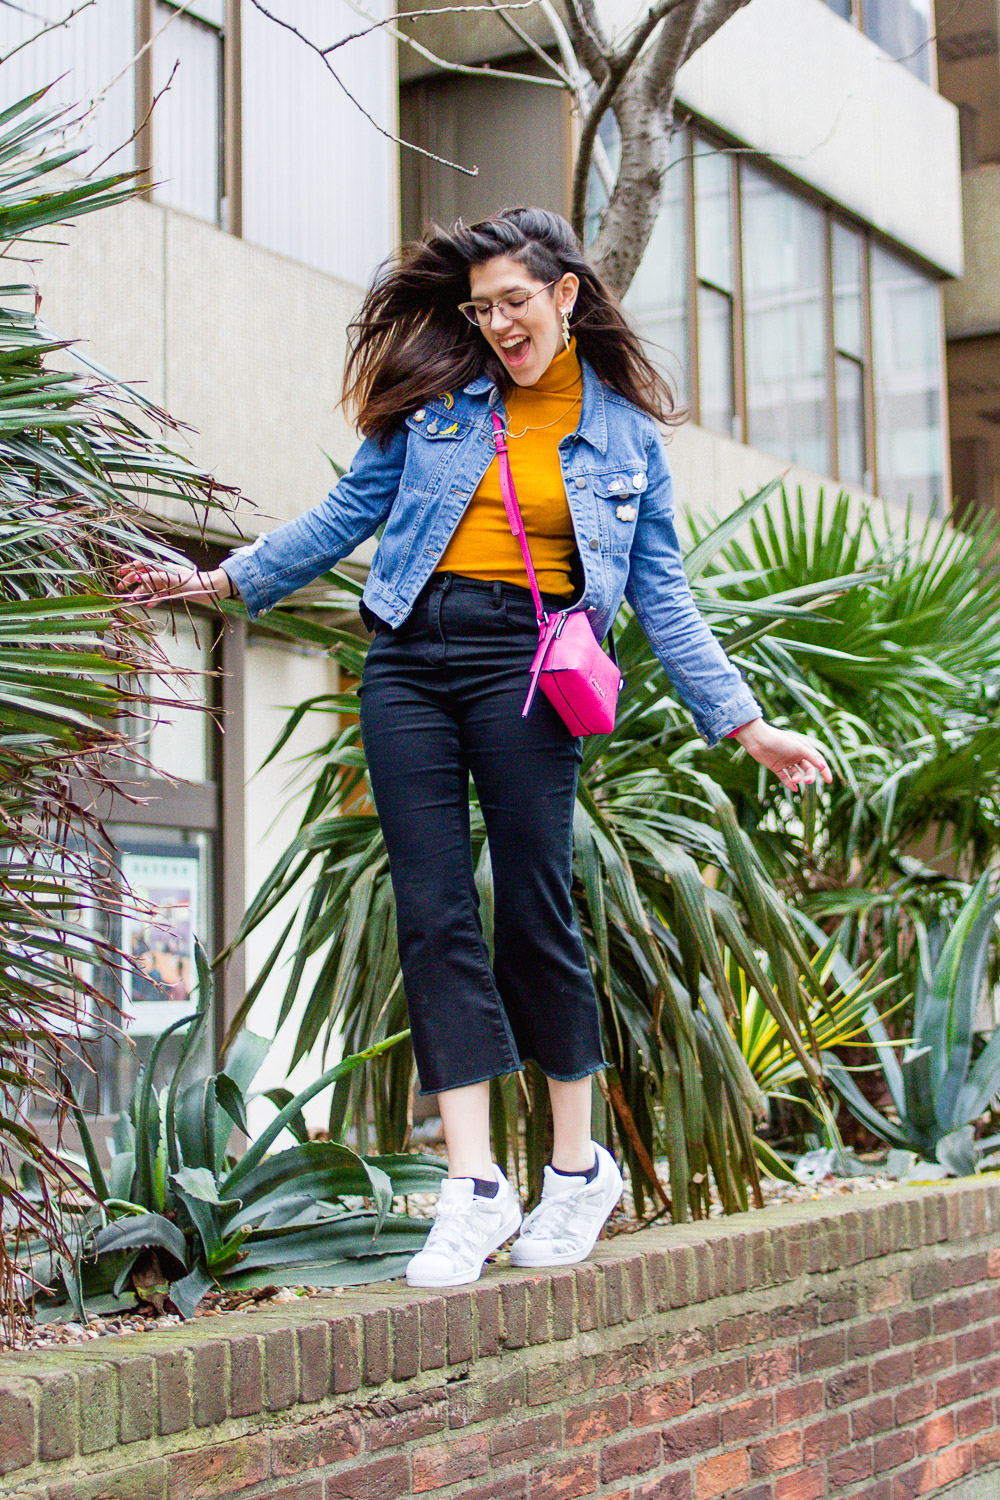 90s nineties style cropped denim outfit